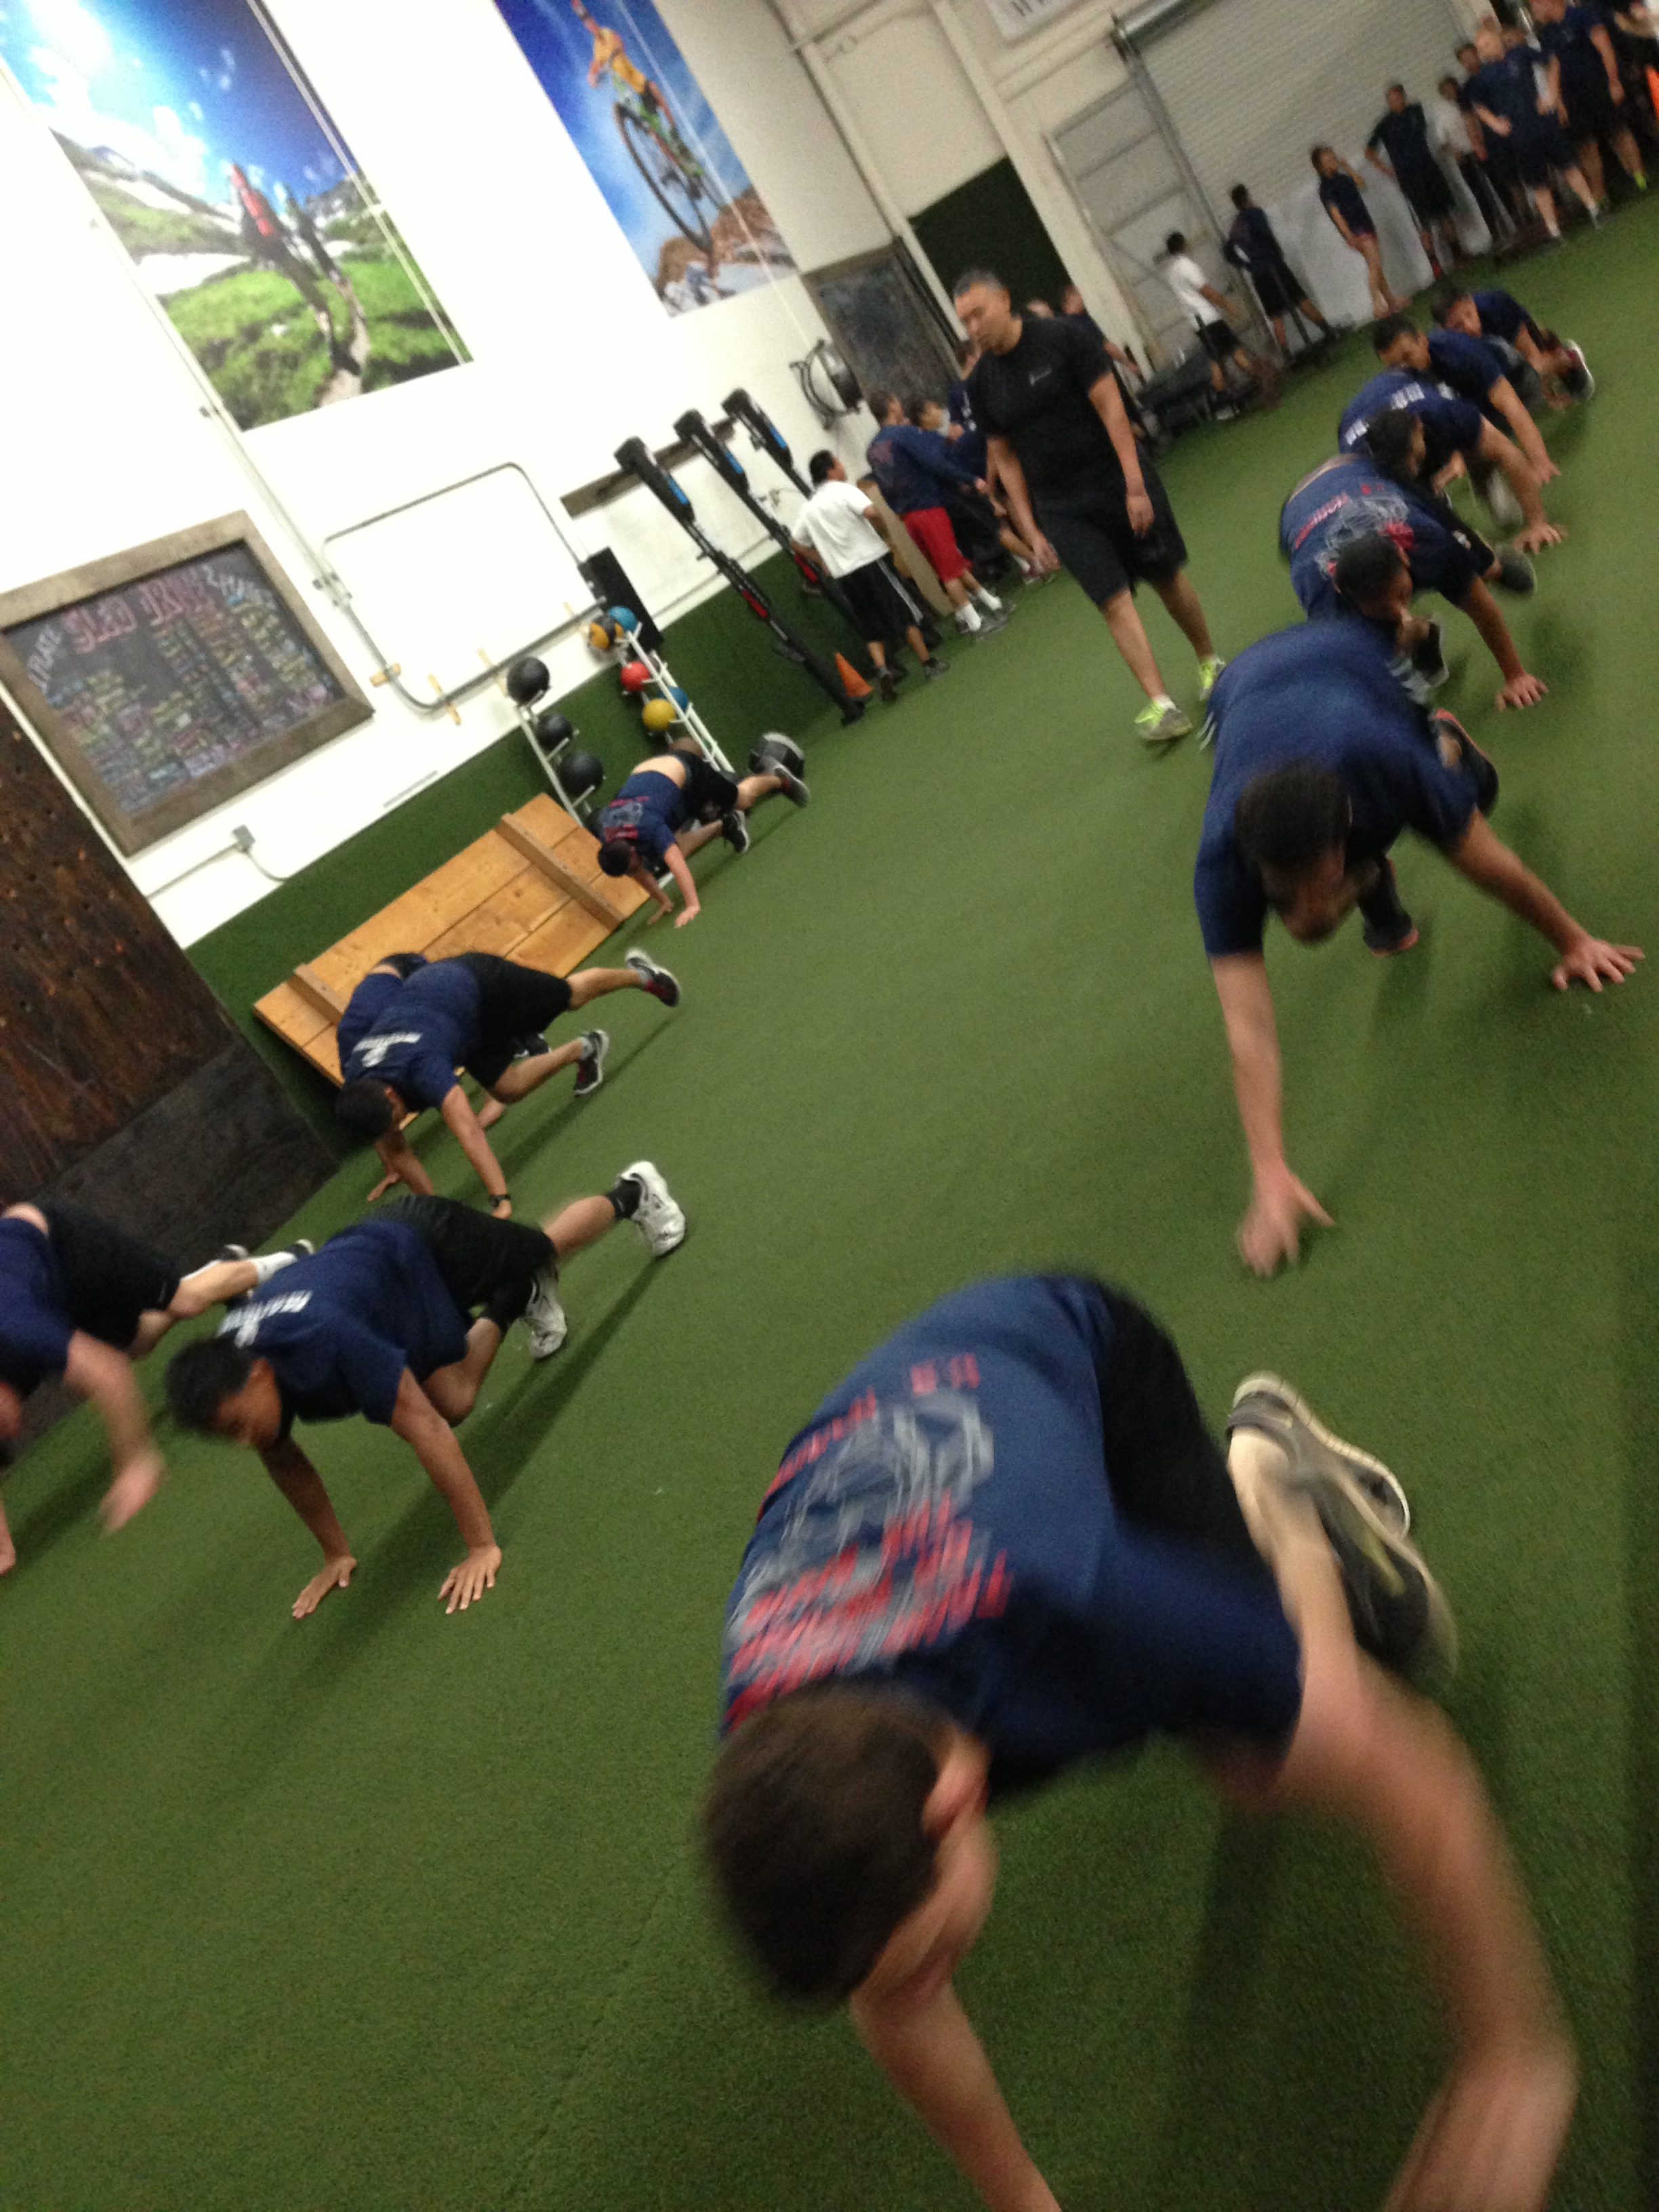 Warming Up Before Exercise A Simple Way To Speed Recovery Improve Circuit Training Performance And Avoid Injury